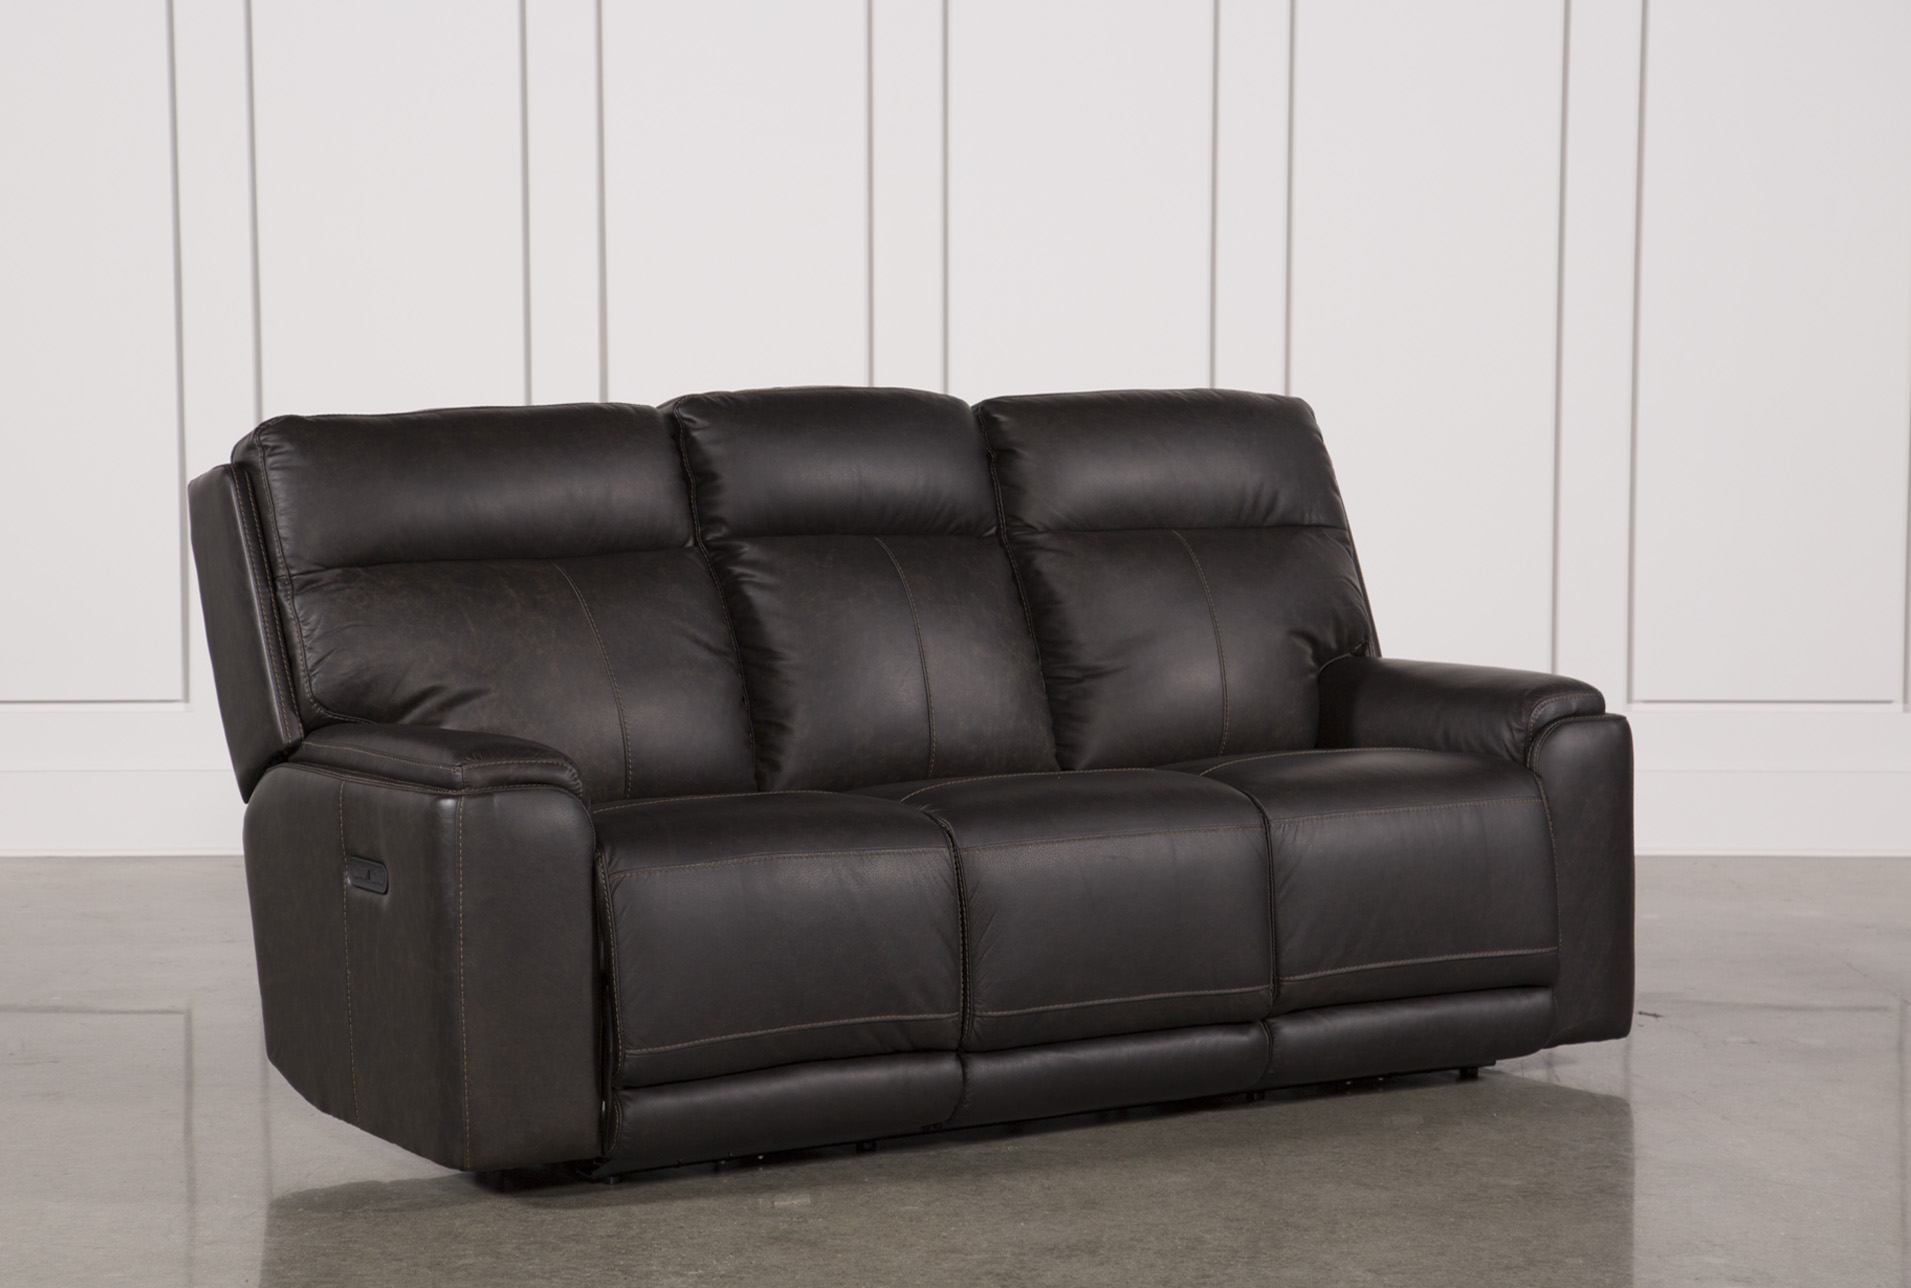 Sinjin Leather Power Reclining Sofa W/Power Headrest (Qty: 1) Has Been  Successfully Added To Your Cart.